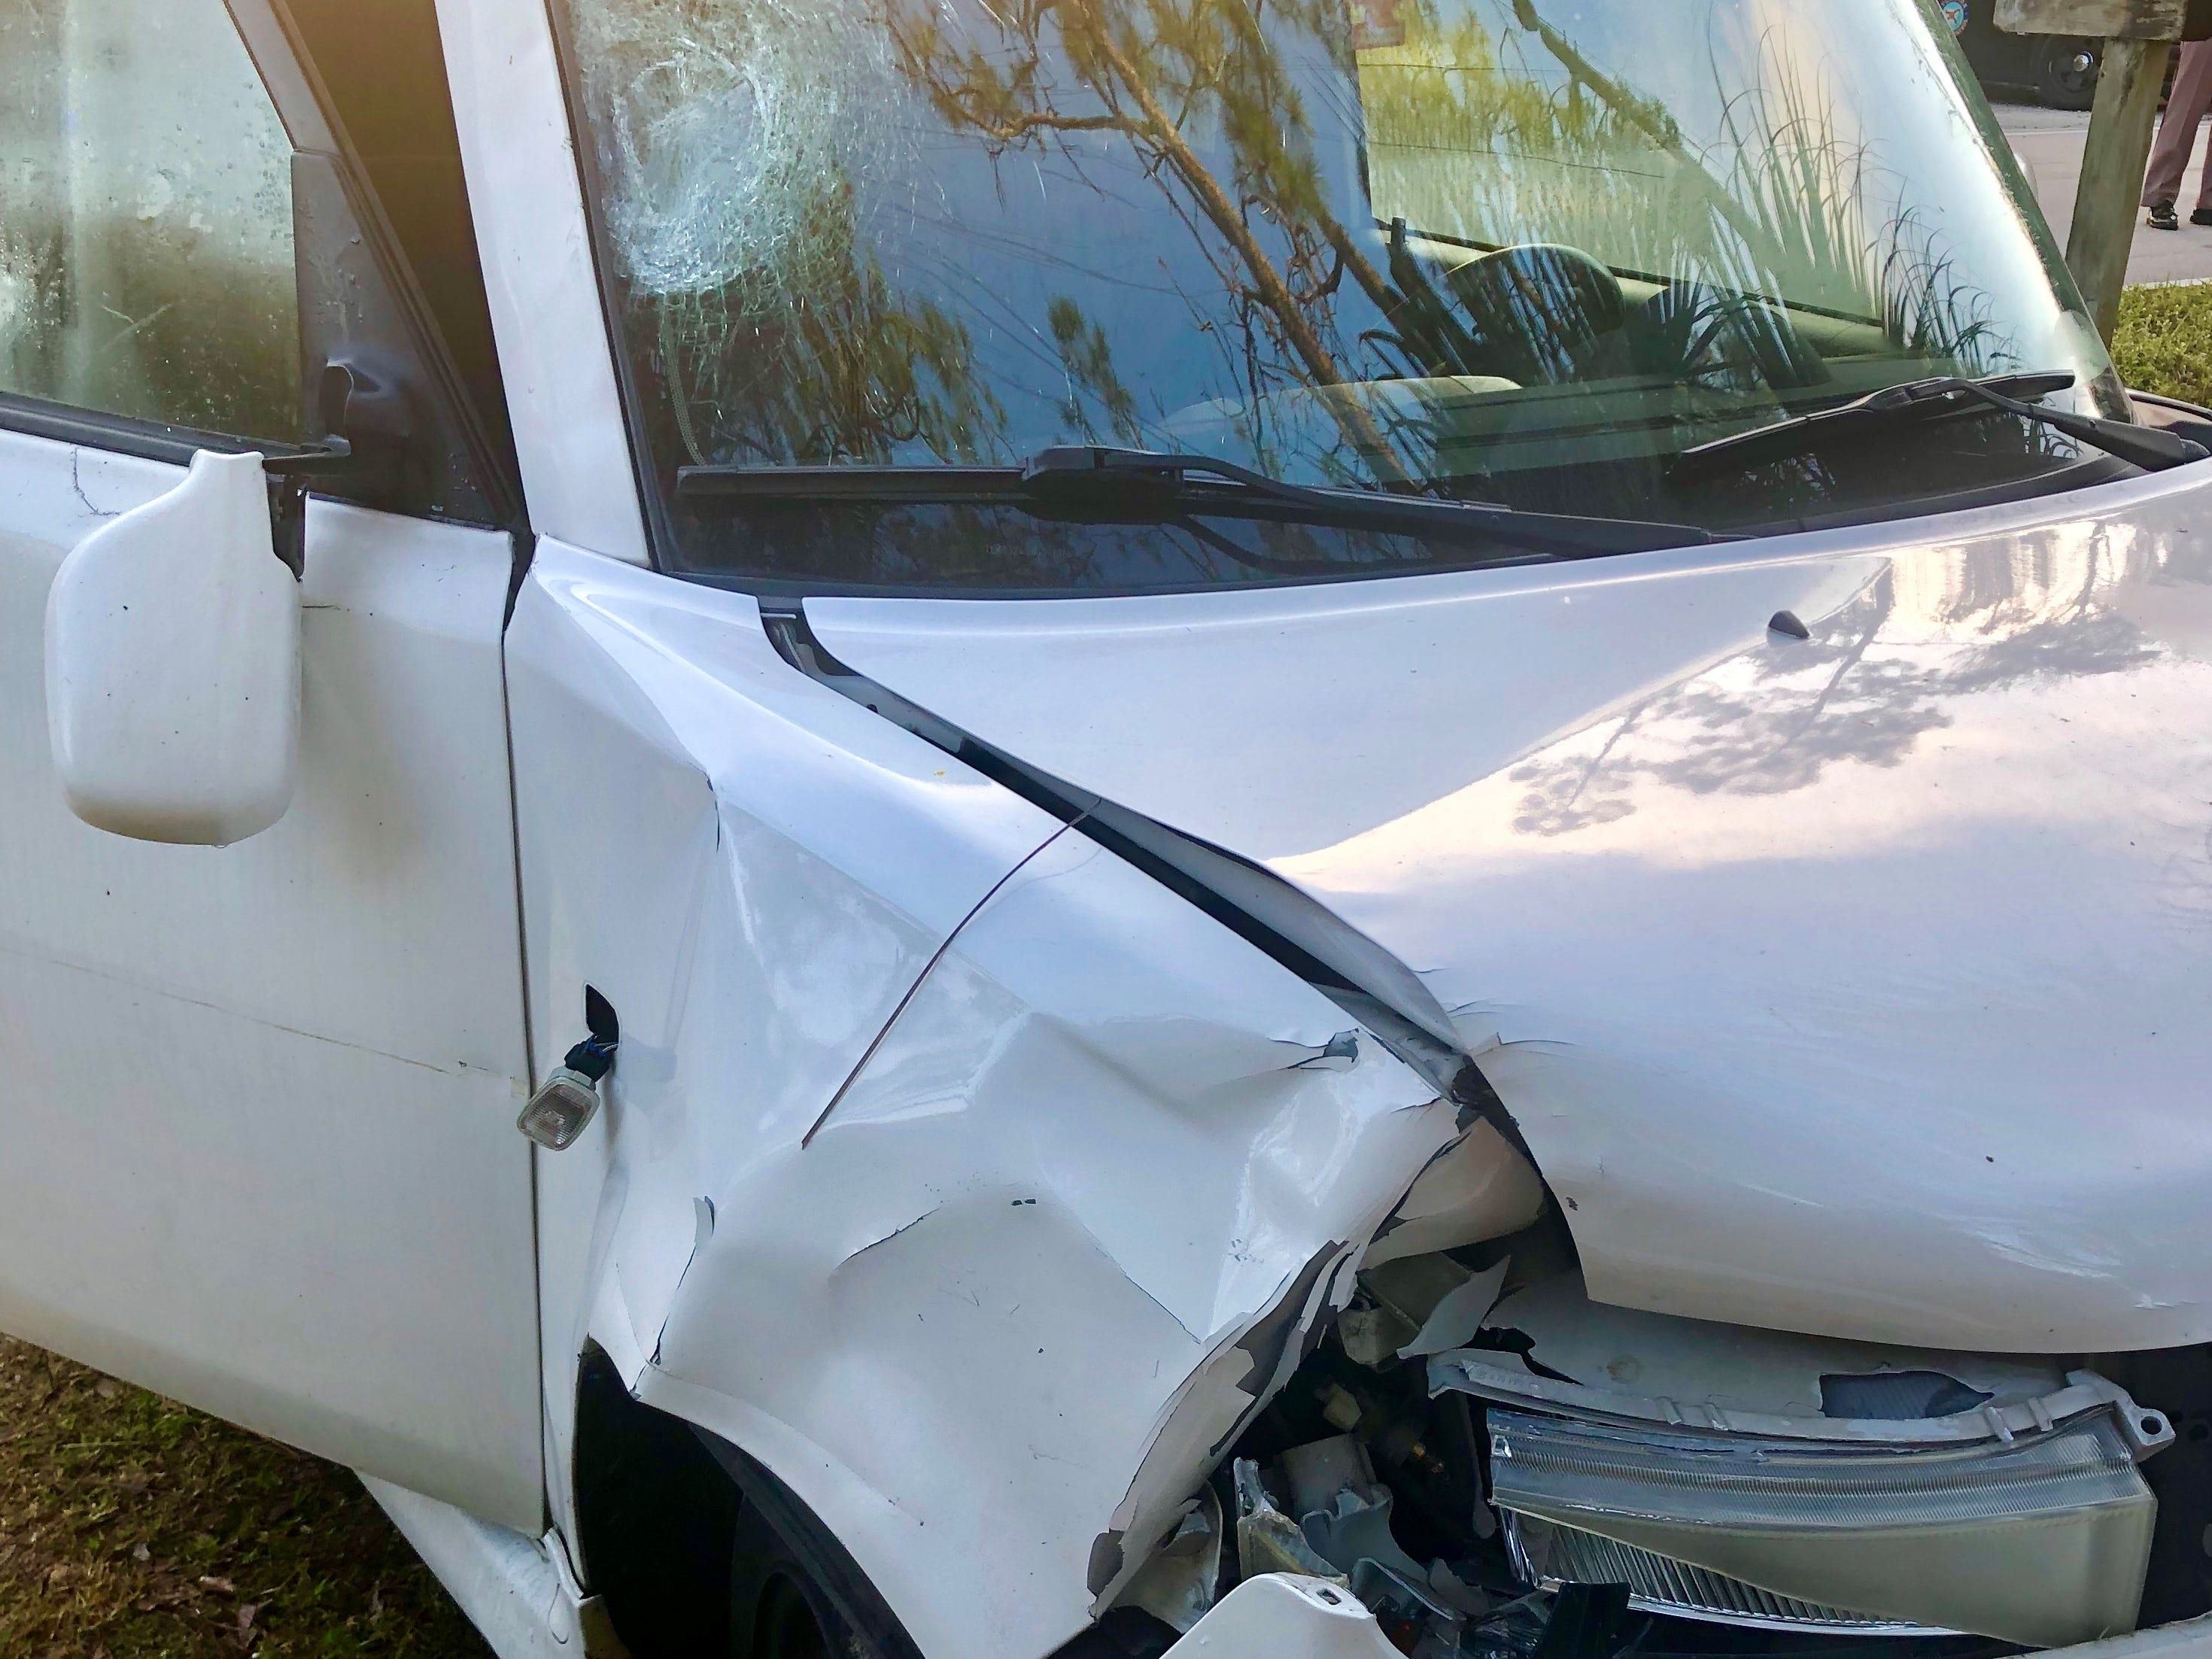 The Florida Highway Patrol said Alana Marie Tamplin, 12, was walking south on the edge of Durrance Road near Deal Road when she was hitby this vehicle Monday.